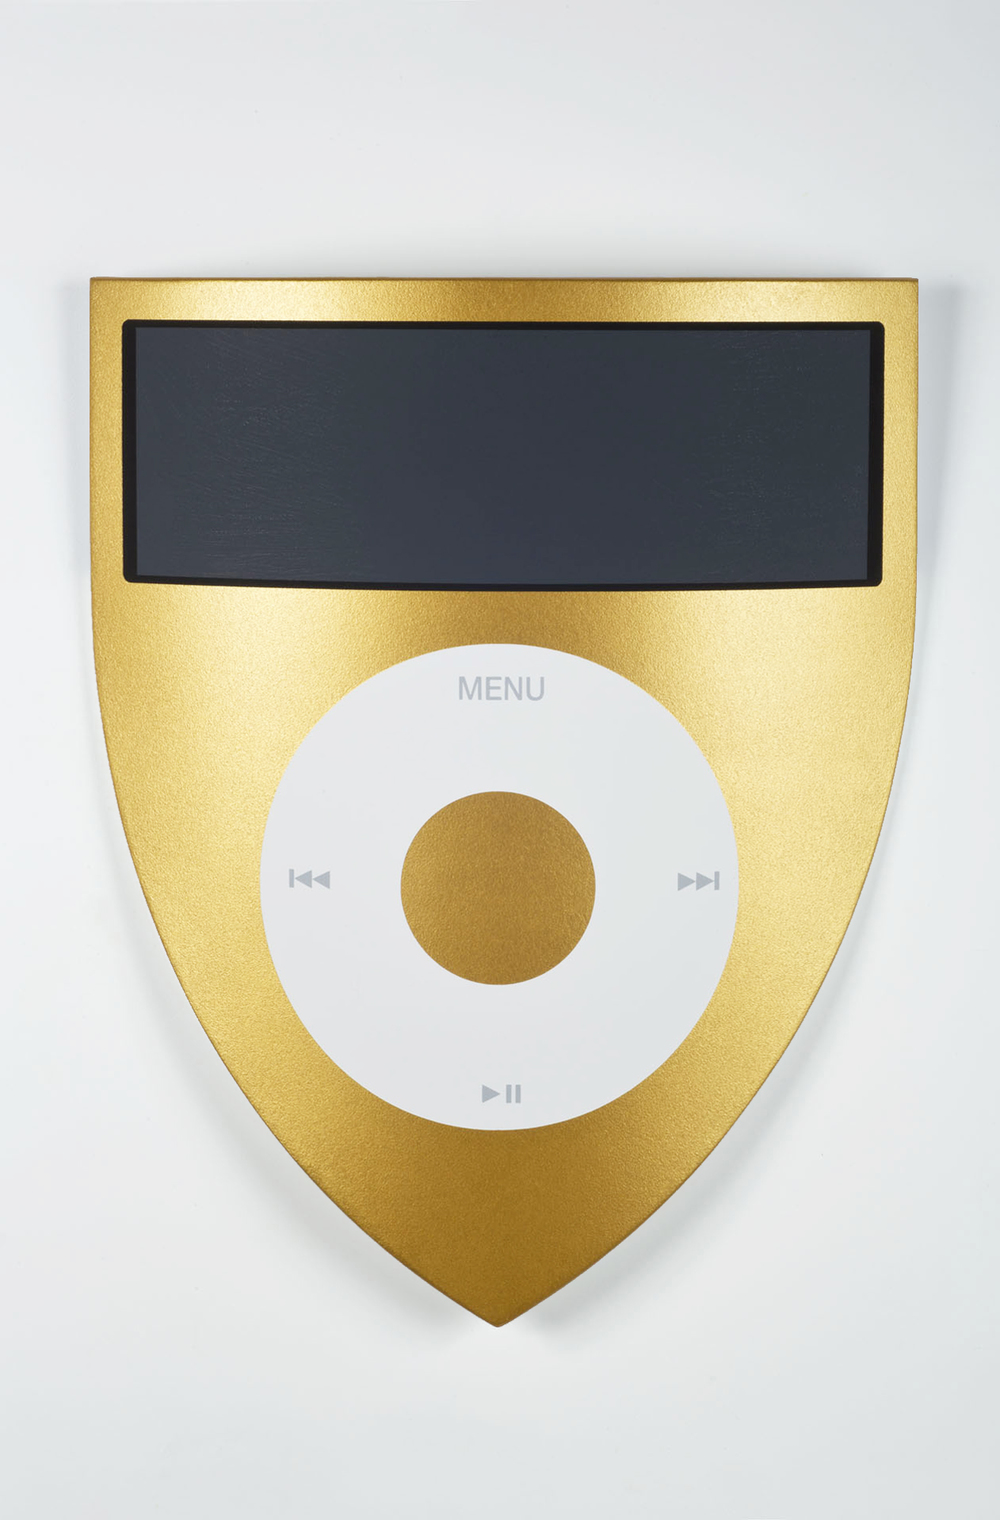 Luke Newton, I-Bouclier Gold, 2013, 62x53,5x5 - cm - Courtesy the artist and Rabouan Moussion Gallery Paris